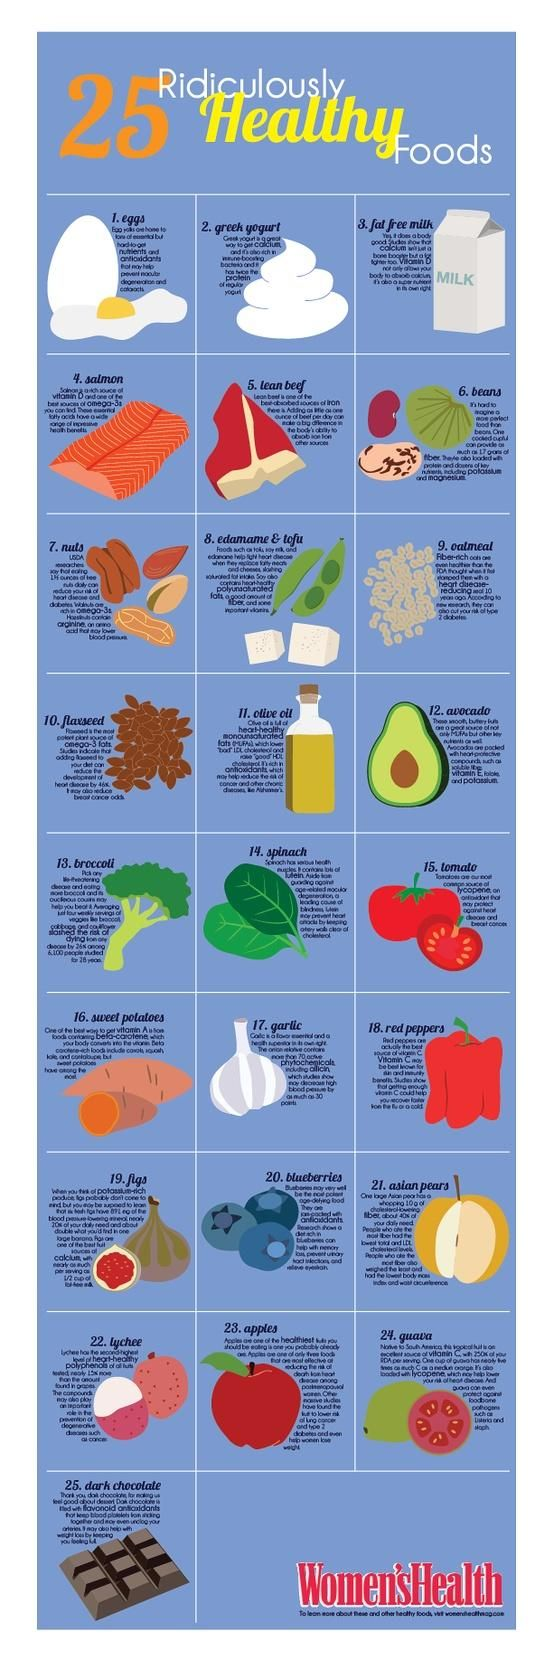 25 Ridiculously Healthy Foods #health. I wish beans were at the front of this list and meats and dairy were at the end. Healthy foods you should be eating!